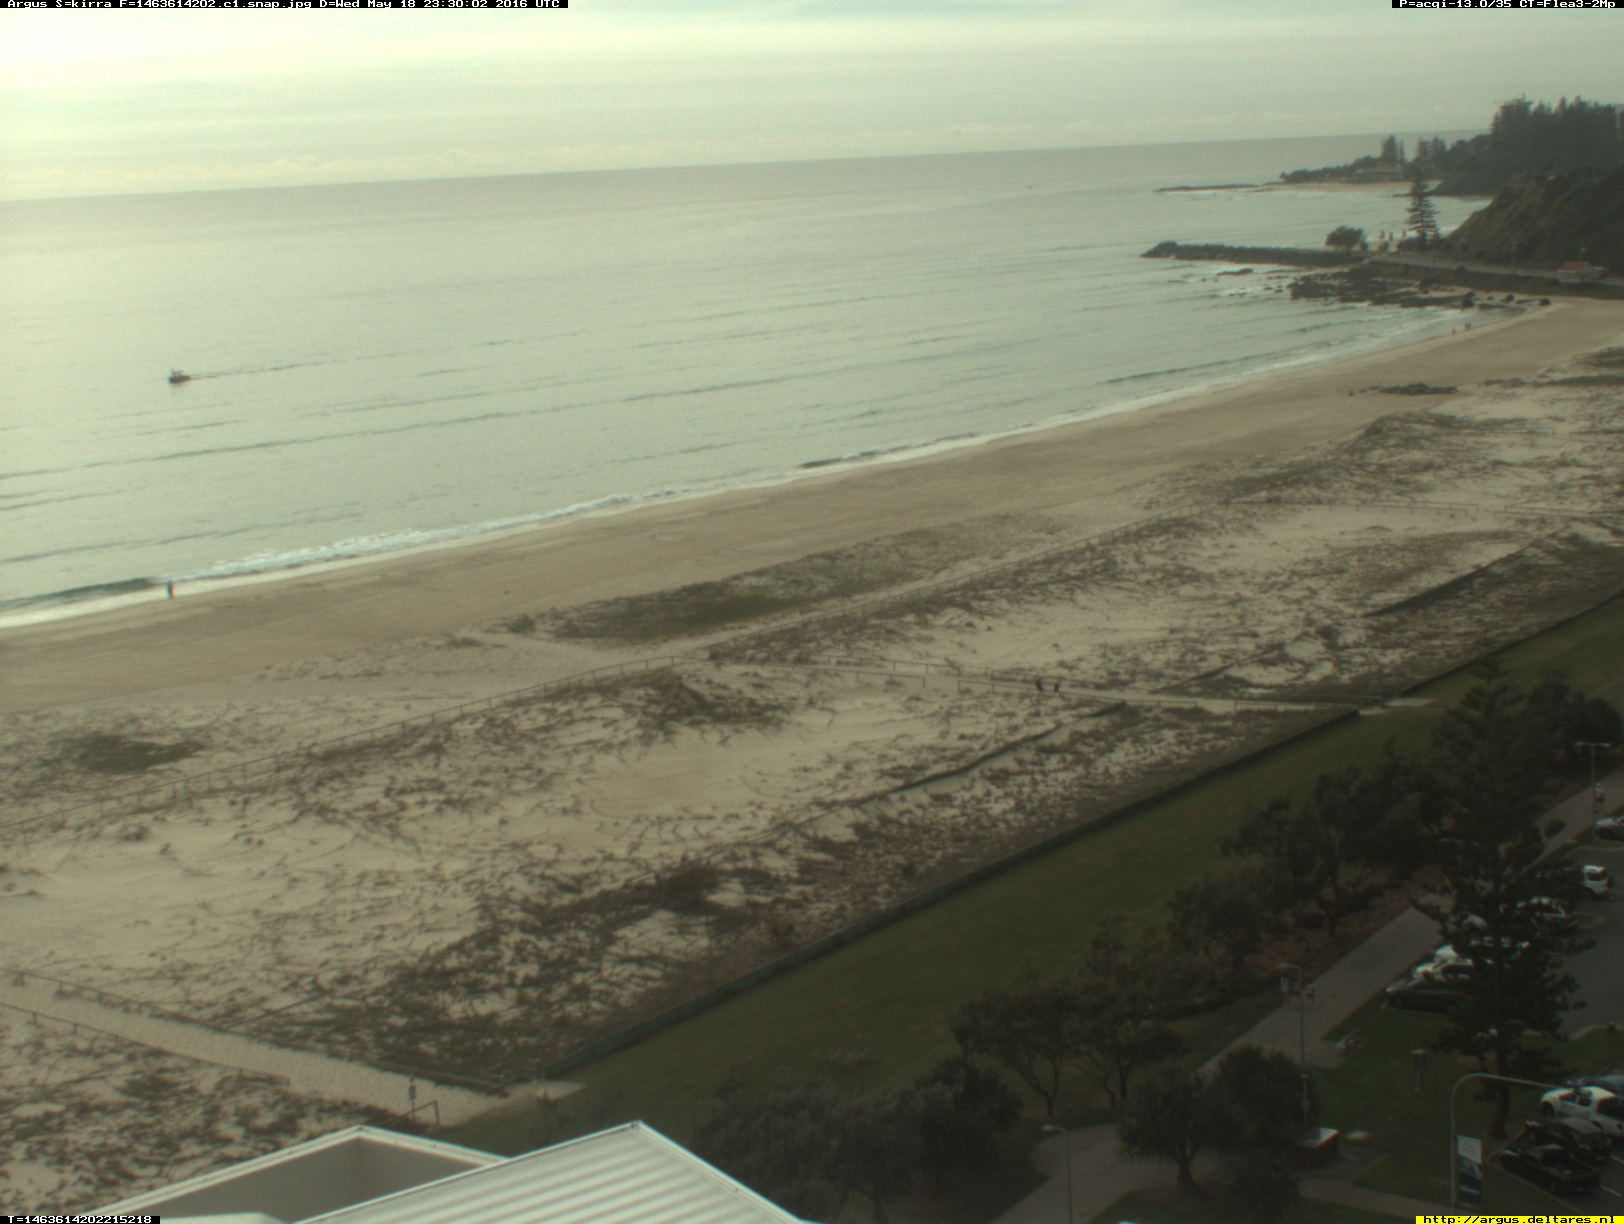 Kirra webcam - North Kirra - Kirra 1 webcam, Queensland, Gold Coast